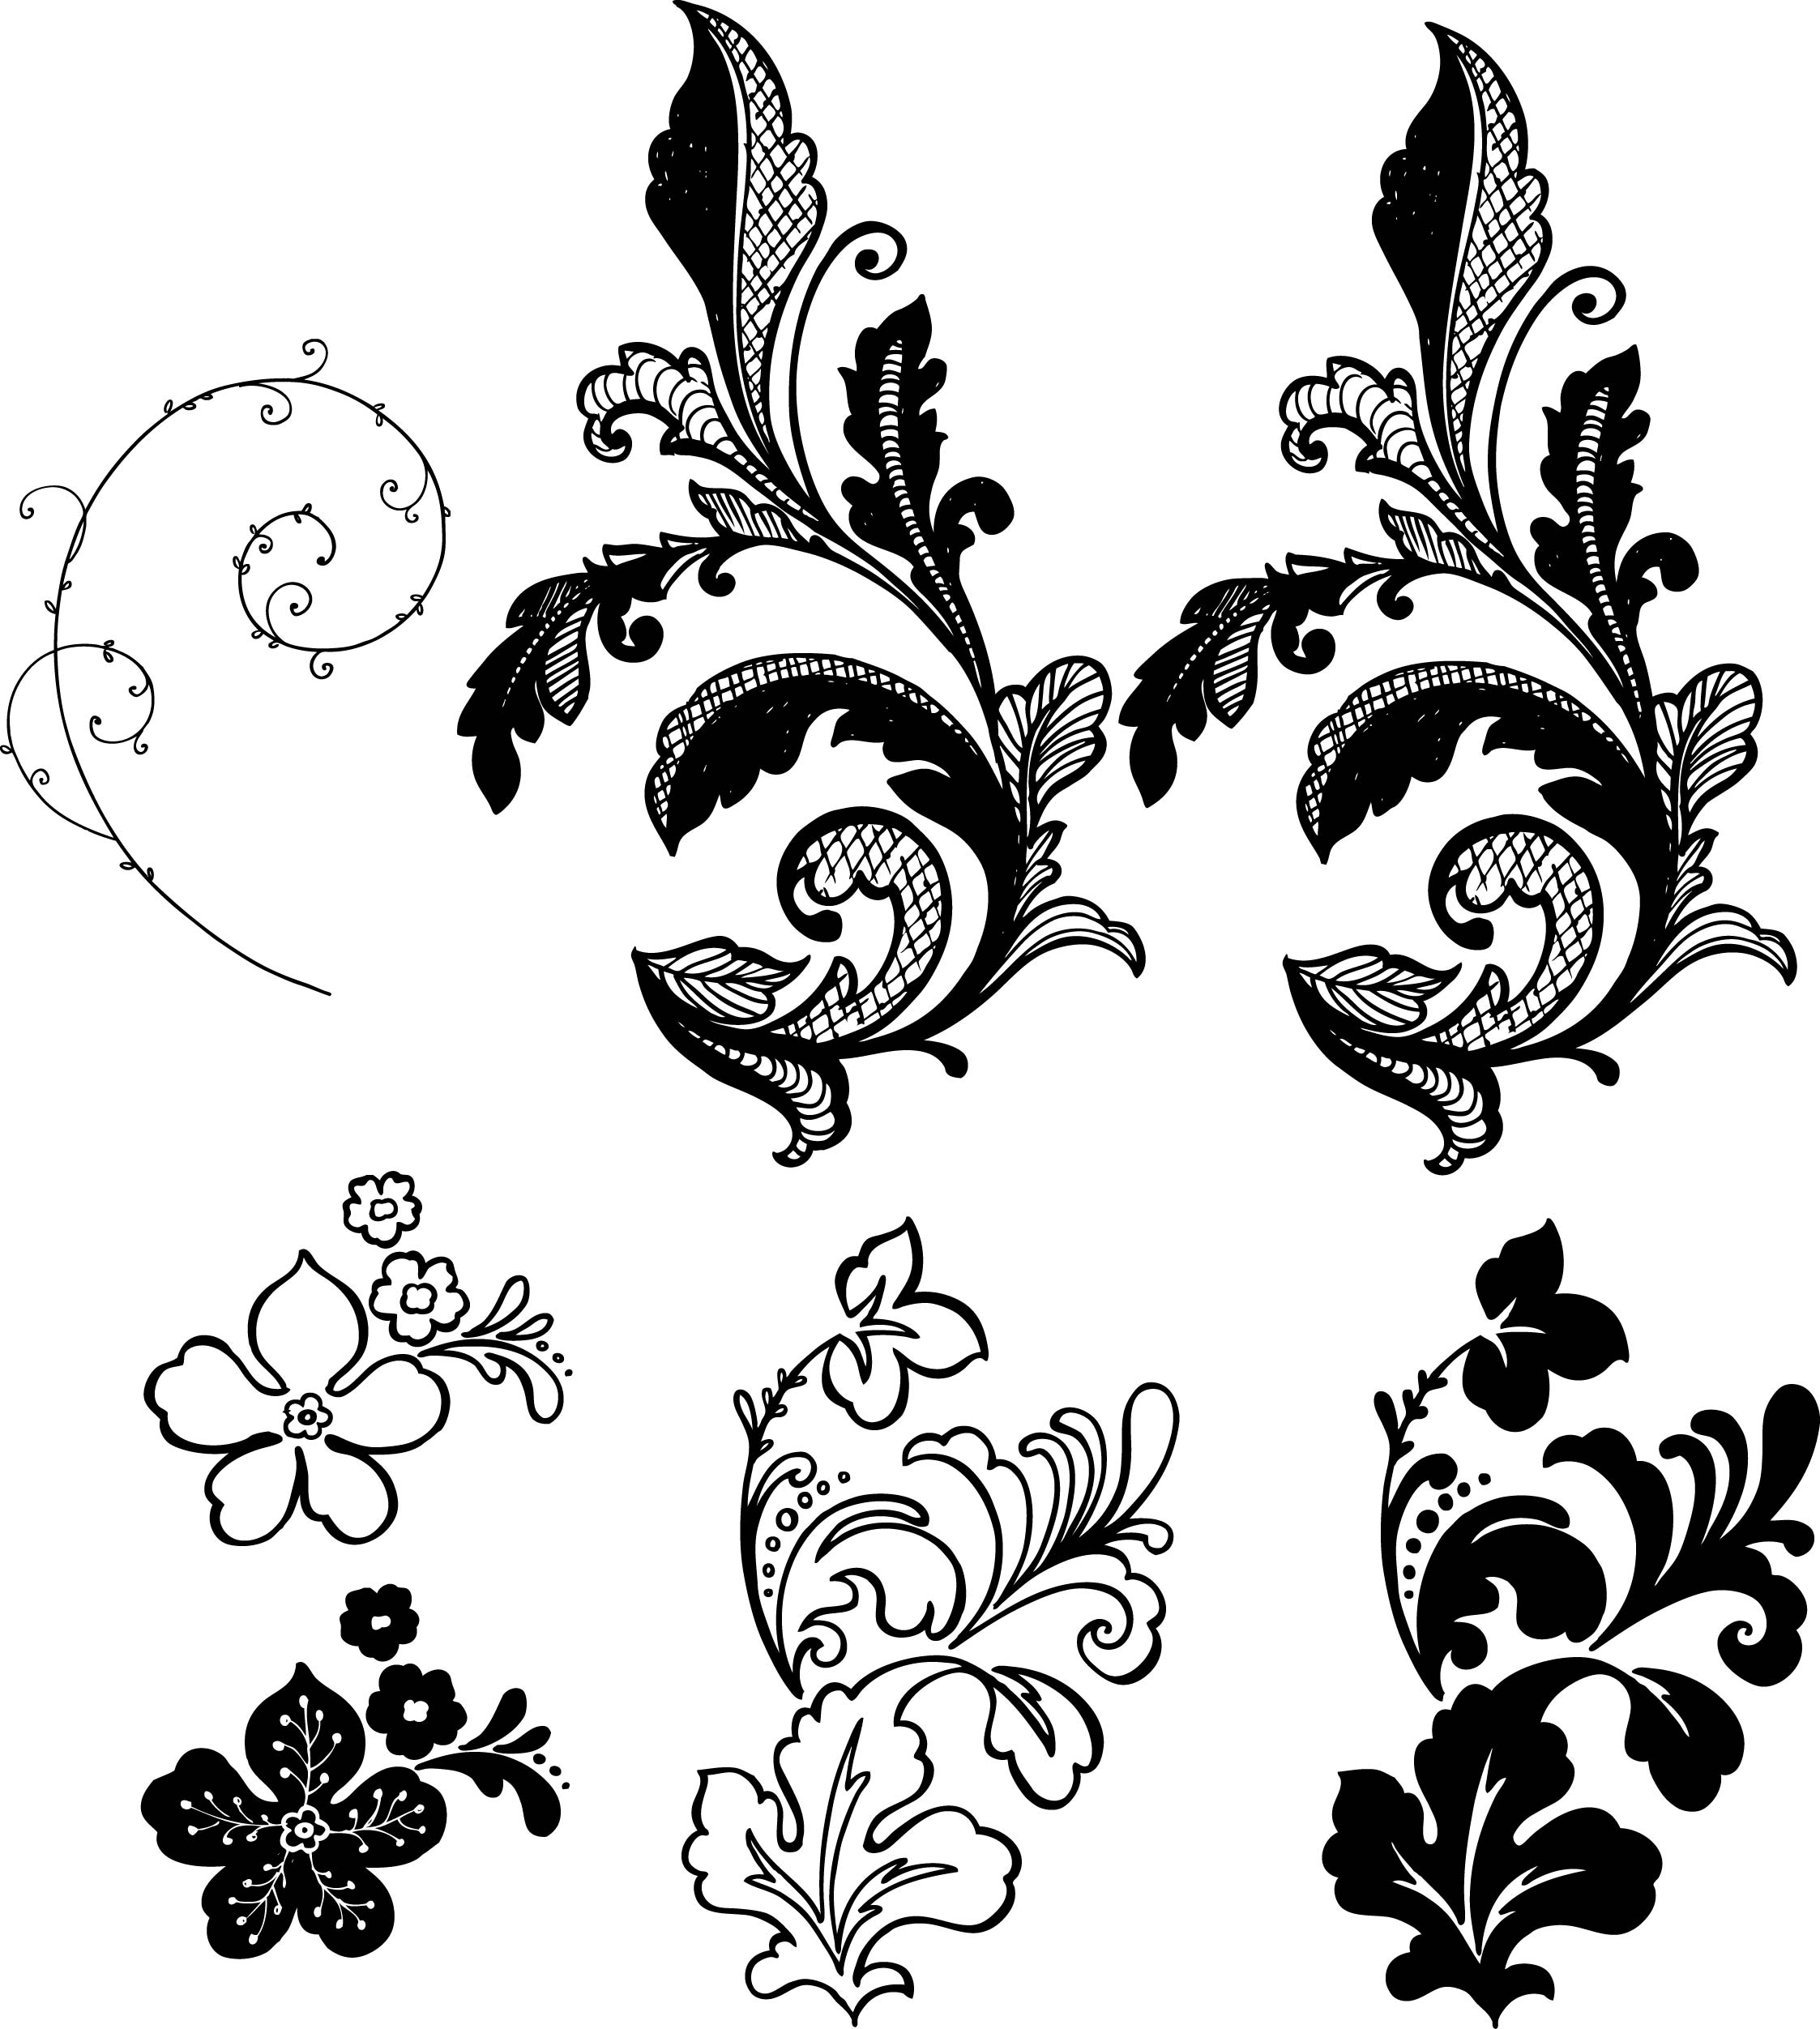 Flowers patterns vector clipart graphic freeuse library Flower Vector Free | Free Download Clip Art | Free Clip Art | on ... graphic freeuse library